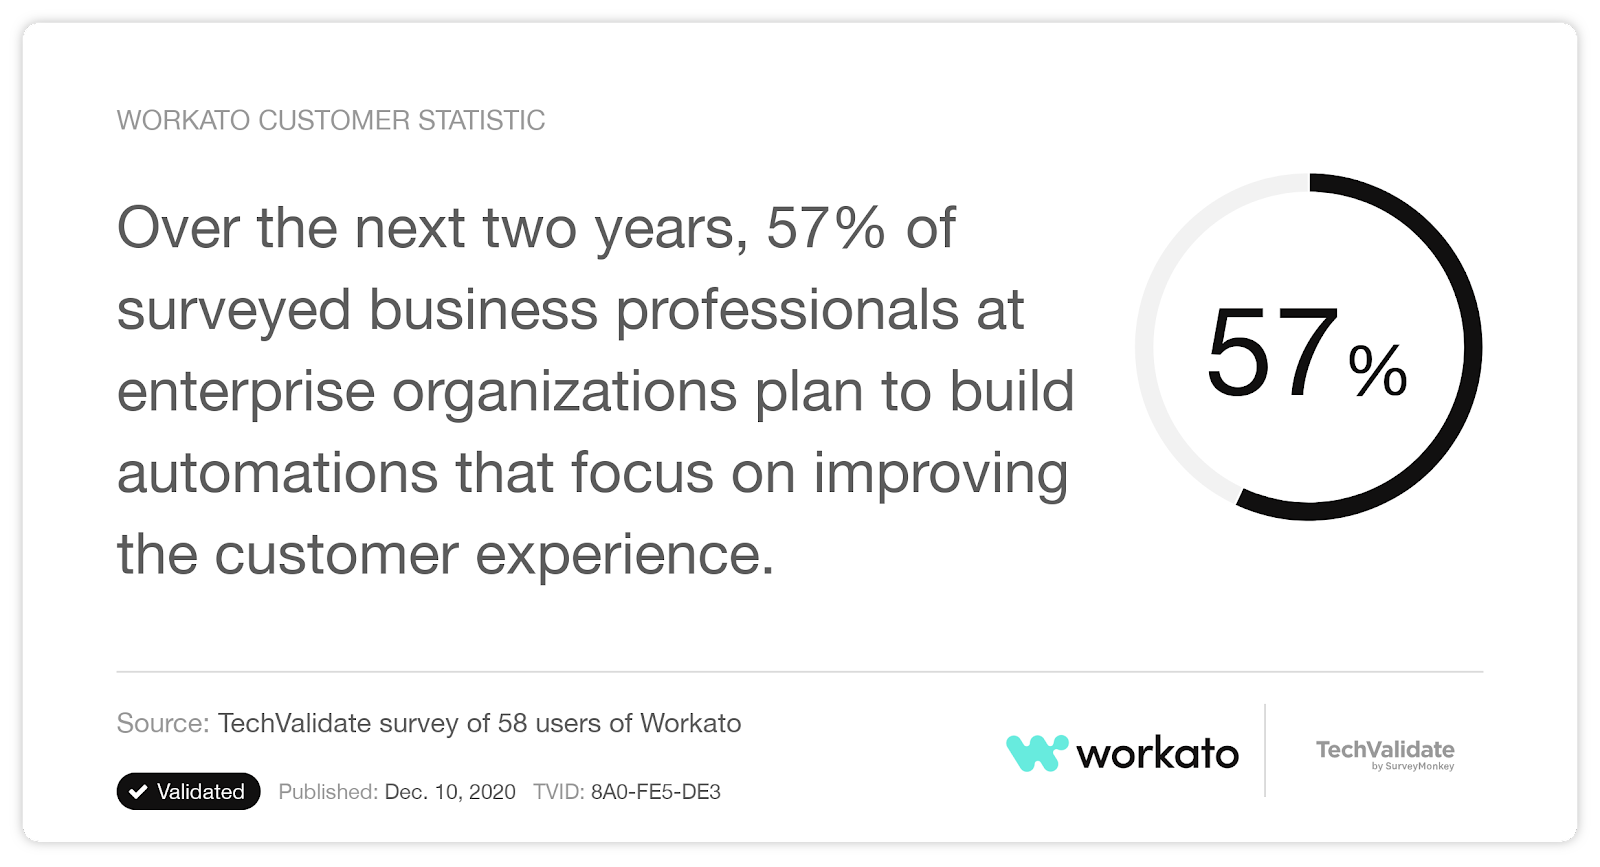 A stat that reveals a strong desire for building customer-focused automations